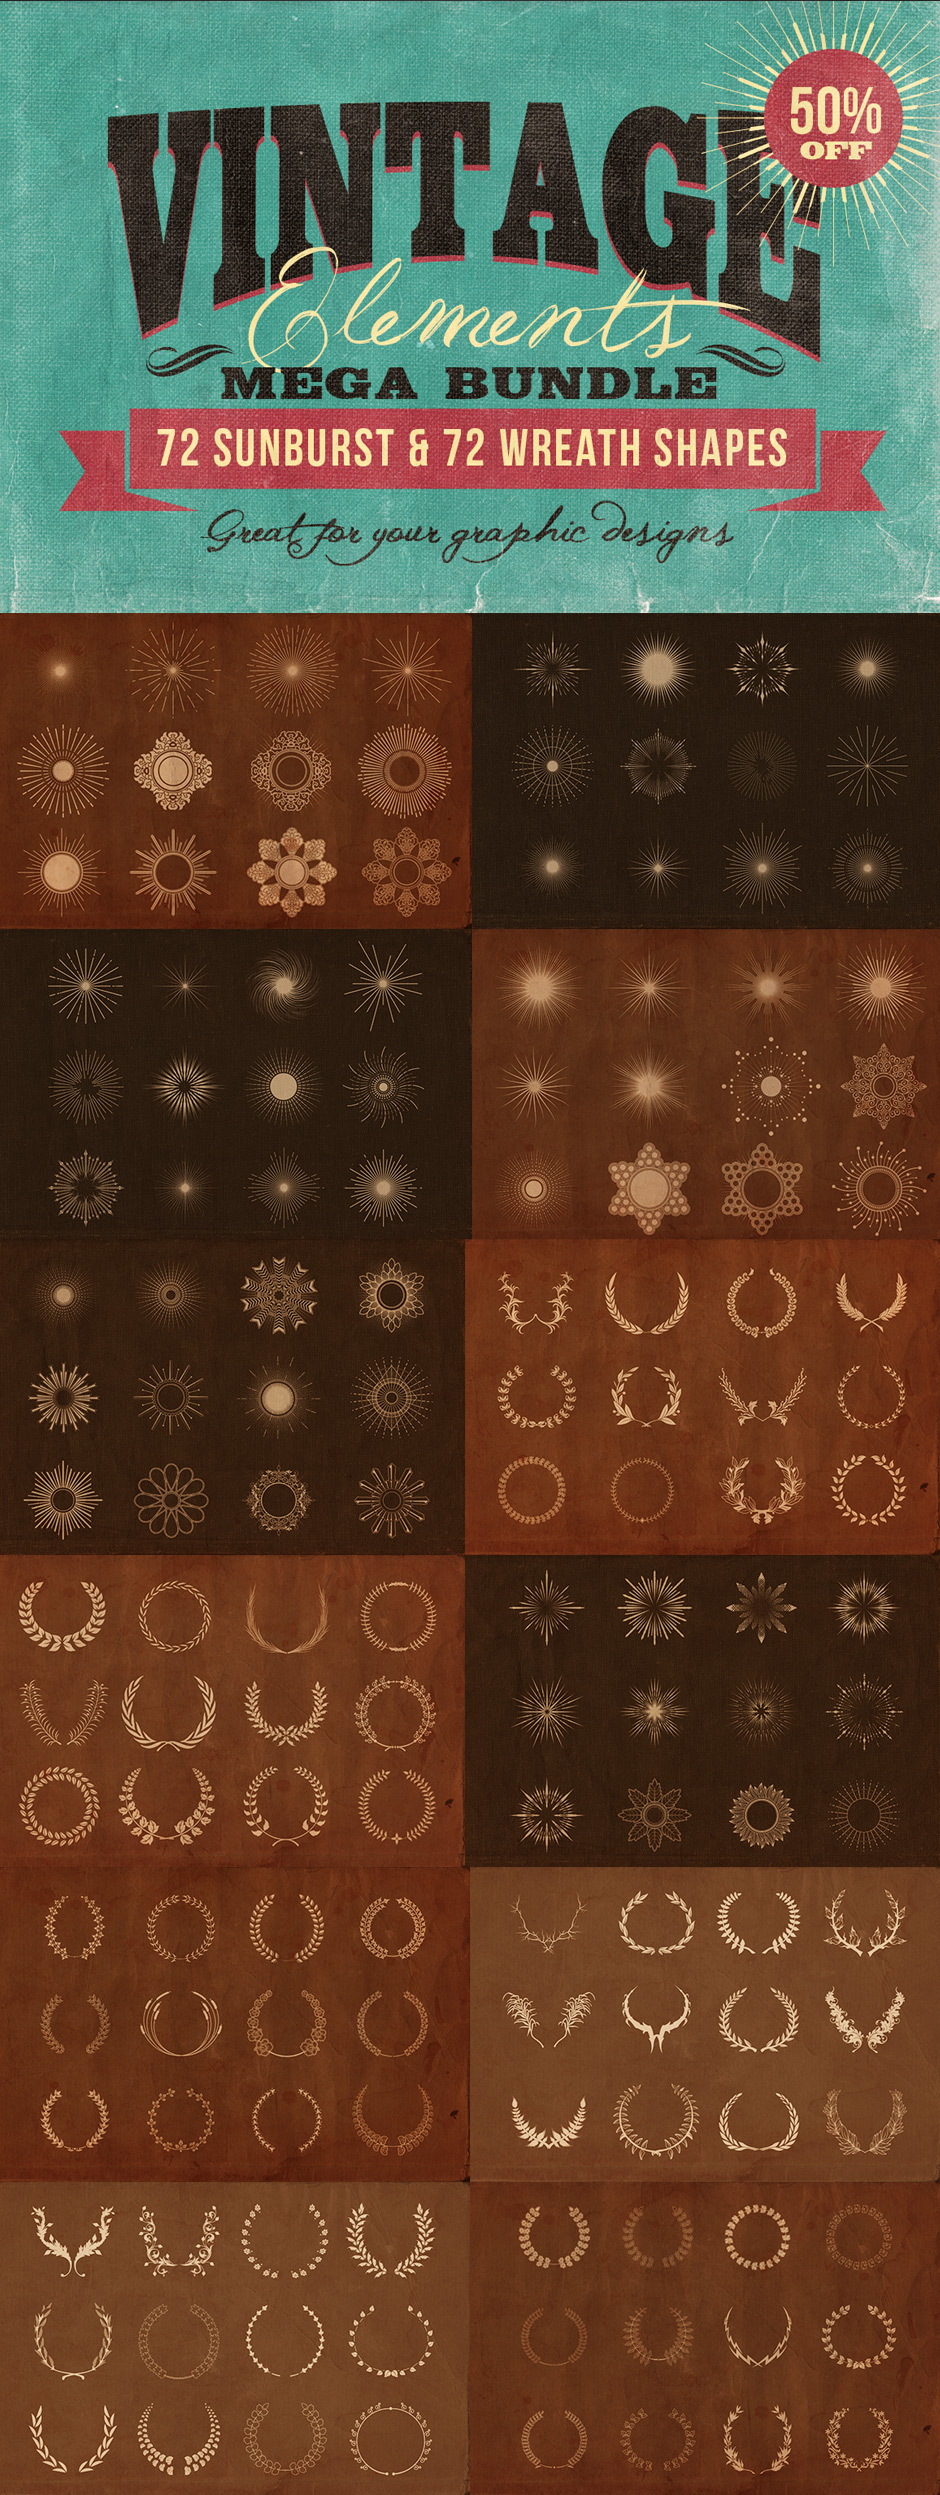 Ultimate Vector Elements Collection